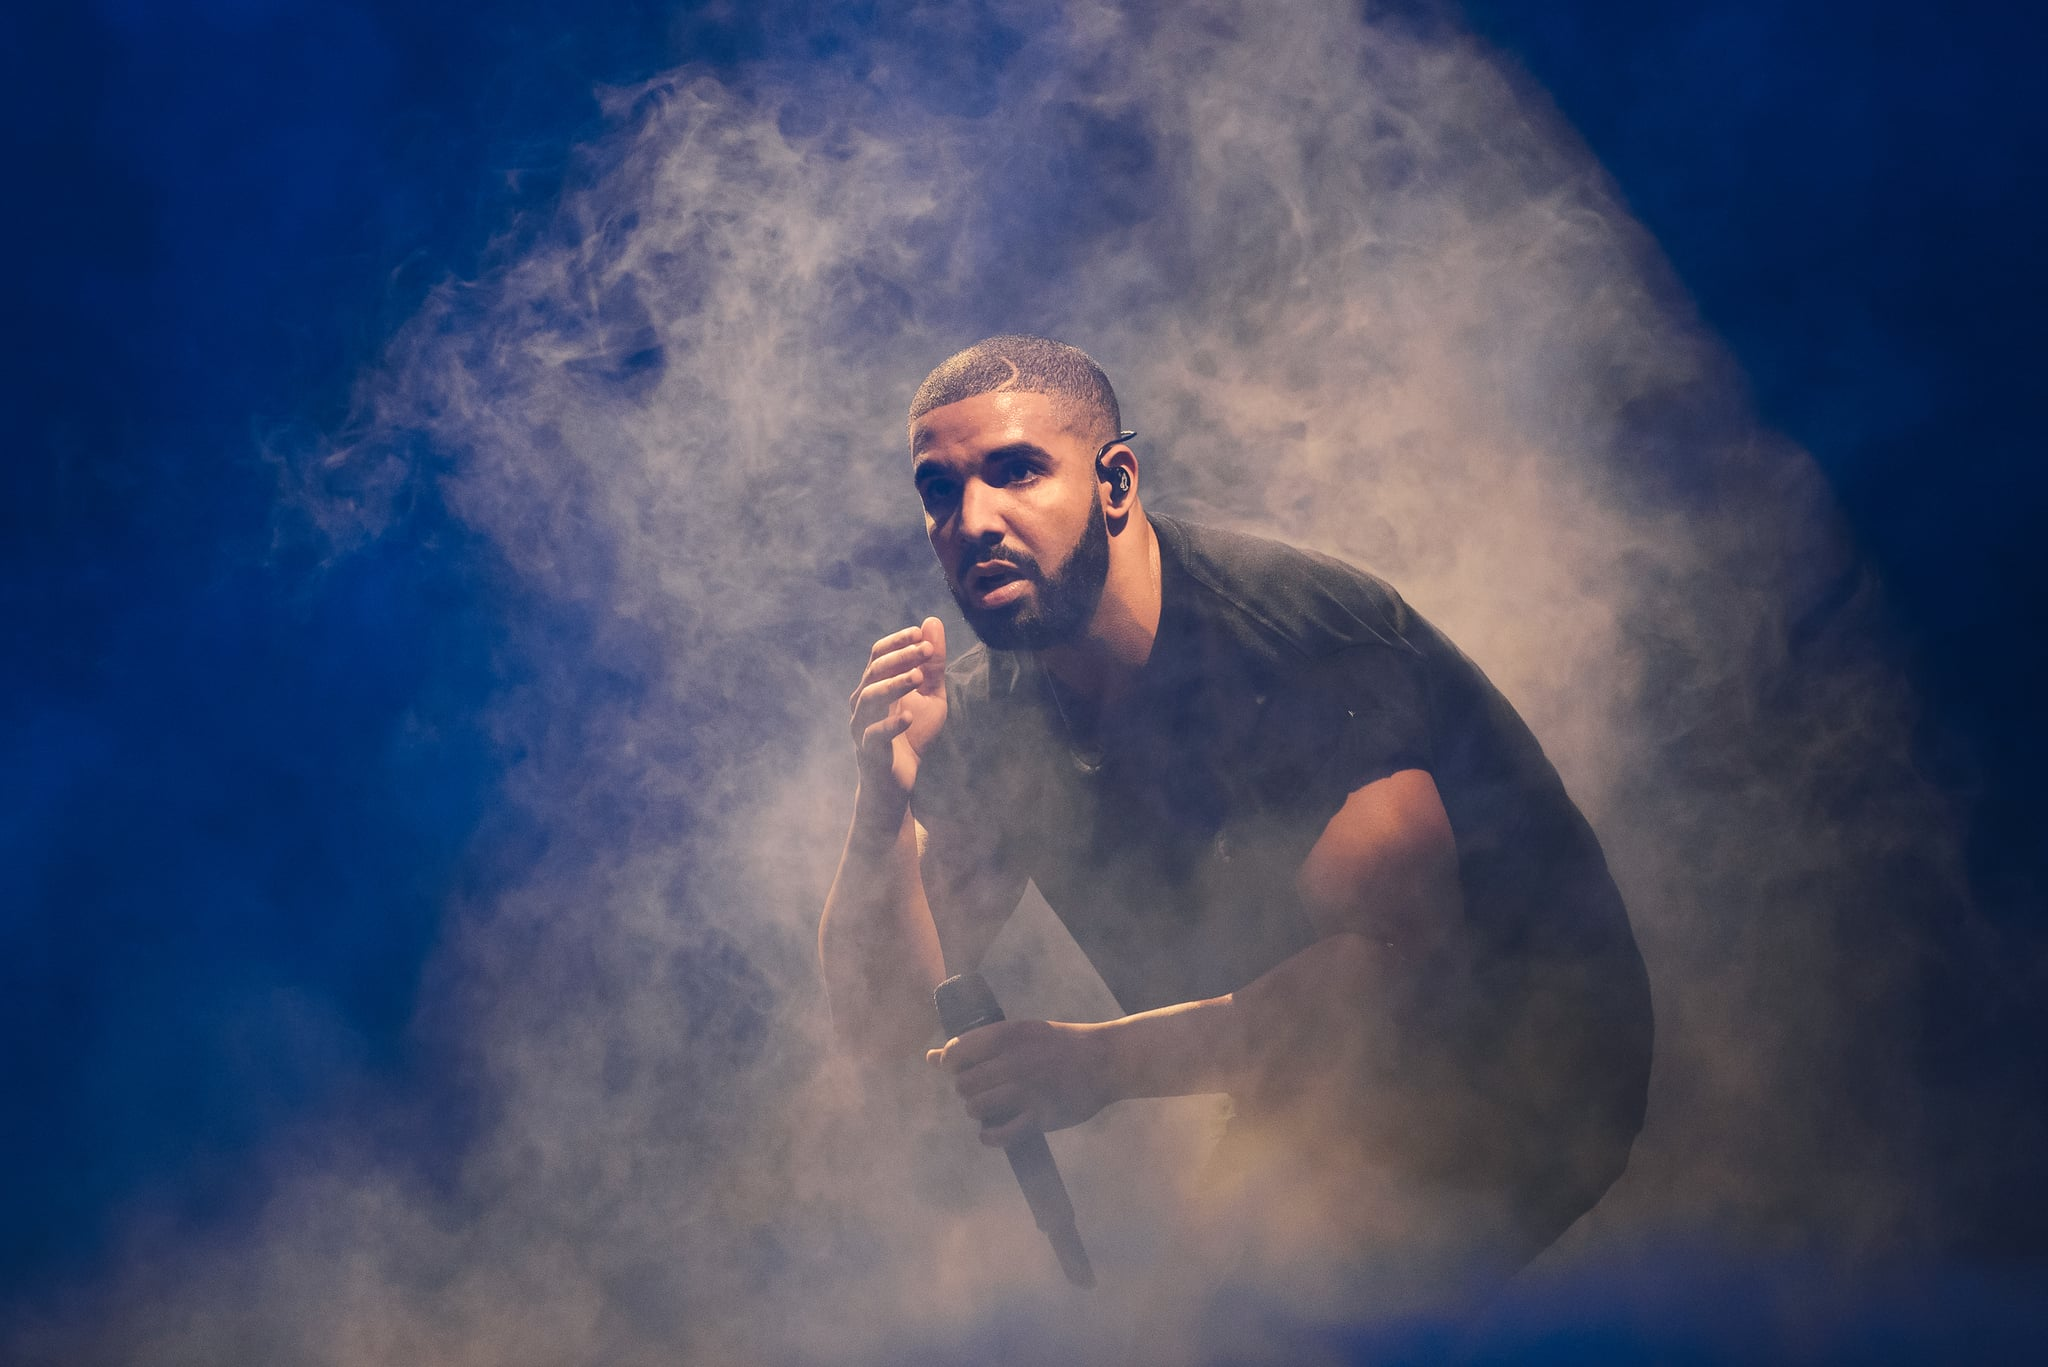 LONDON, ENGLAND - JUNE 28:  Drake performs at the New Look Wireless birthday party at Finsbury Park on June 28, 2015 in London, England.  (Photo by Joseph Okpako/WireImage)